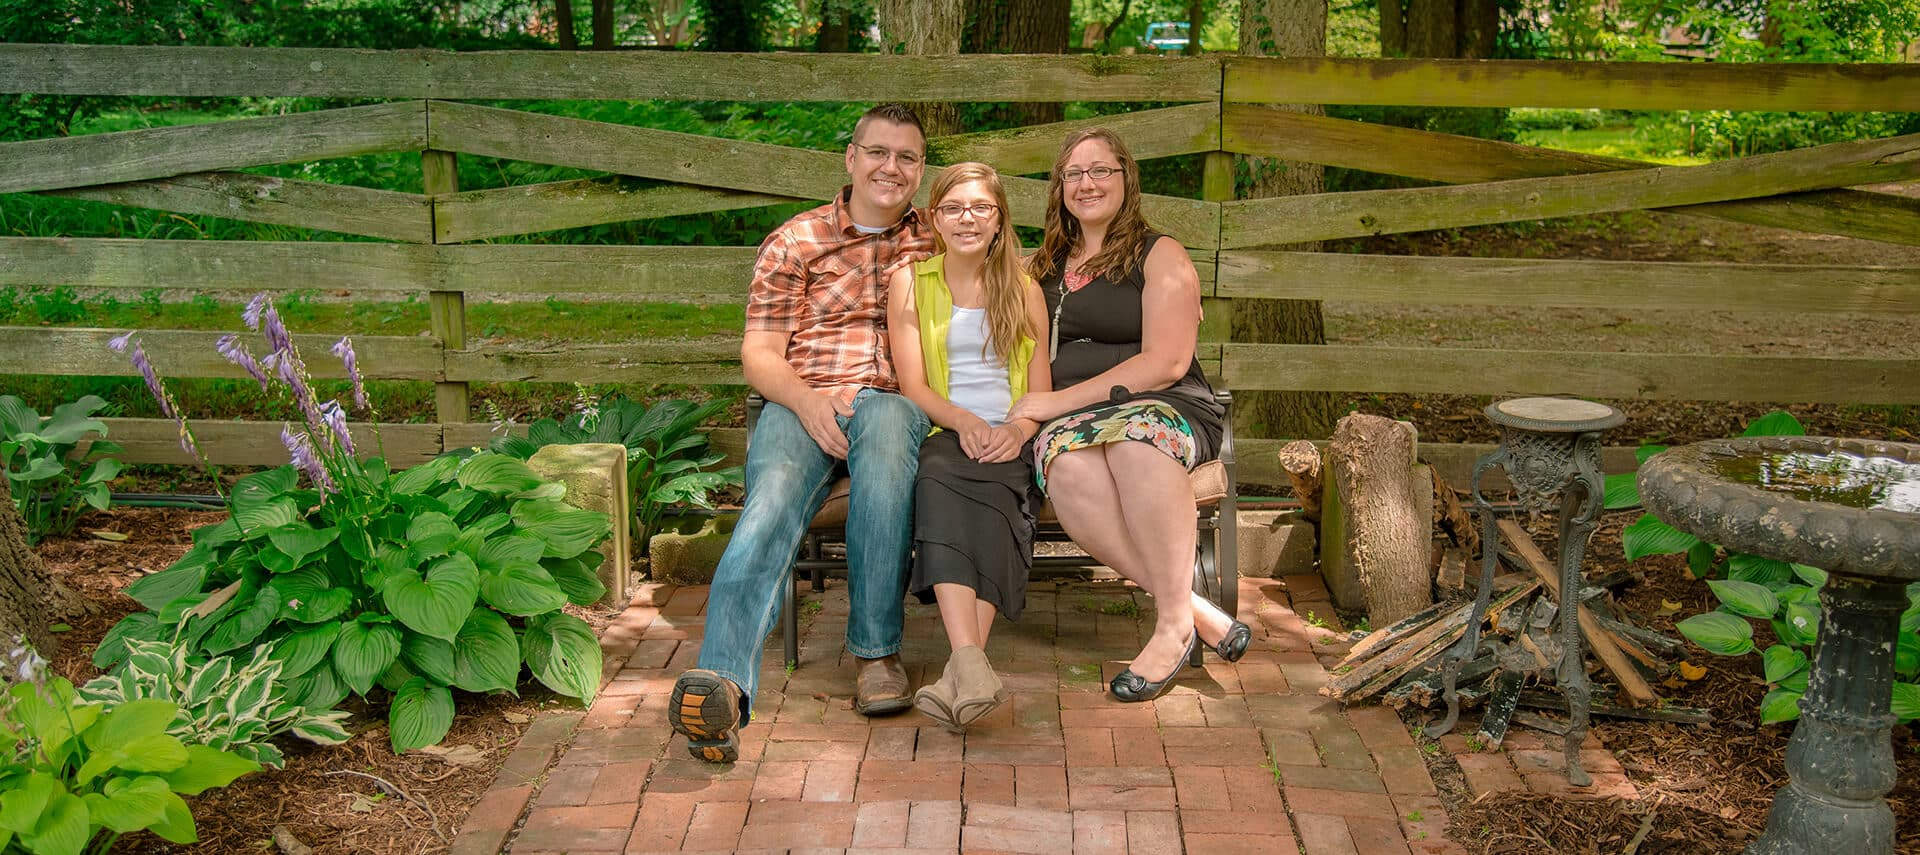 Father daughter and mother sit on park bench